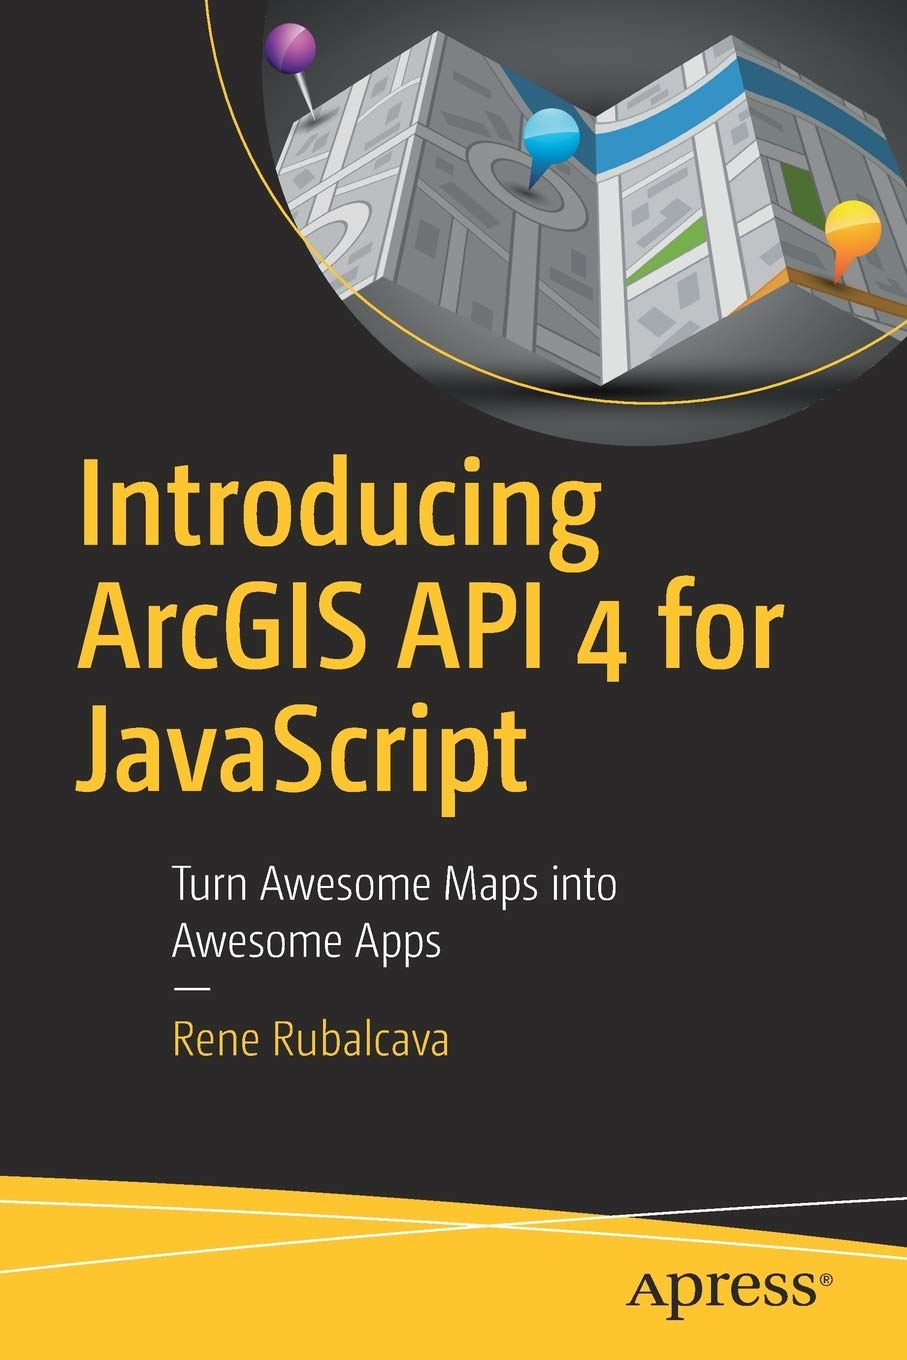 Introducing ArcGIS API 4 for JavaScript: Turn Awesome Maps into Awesome Apps